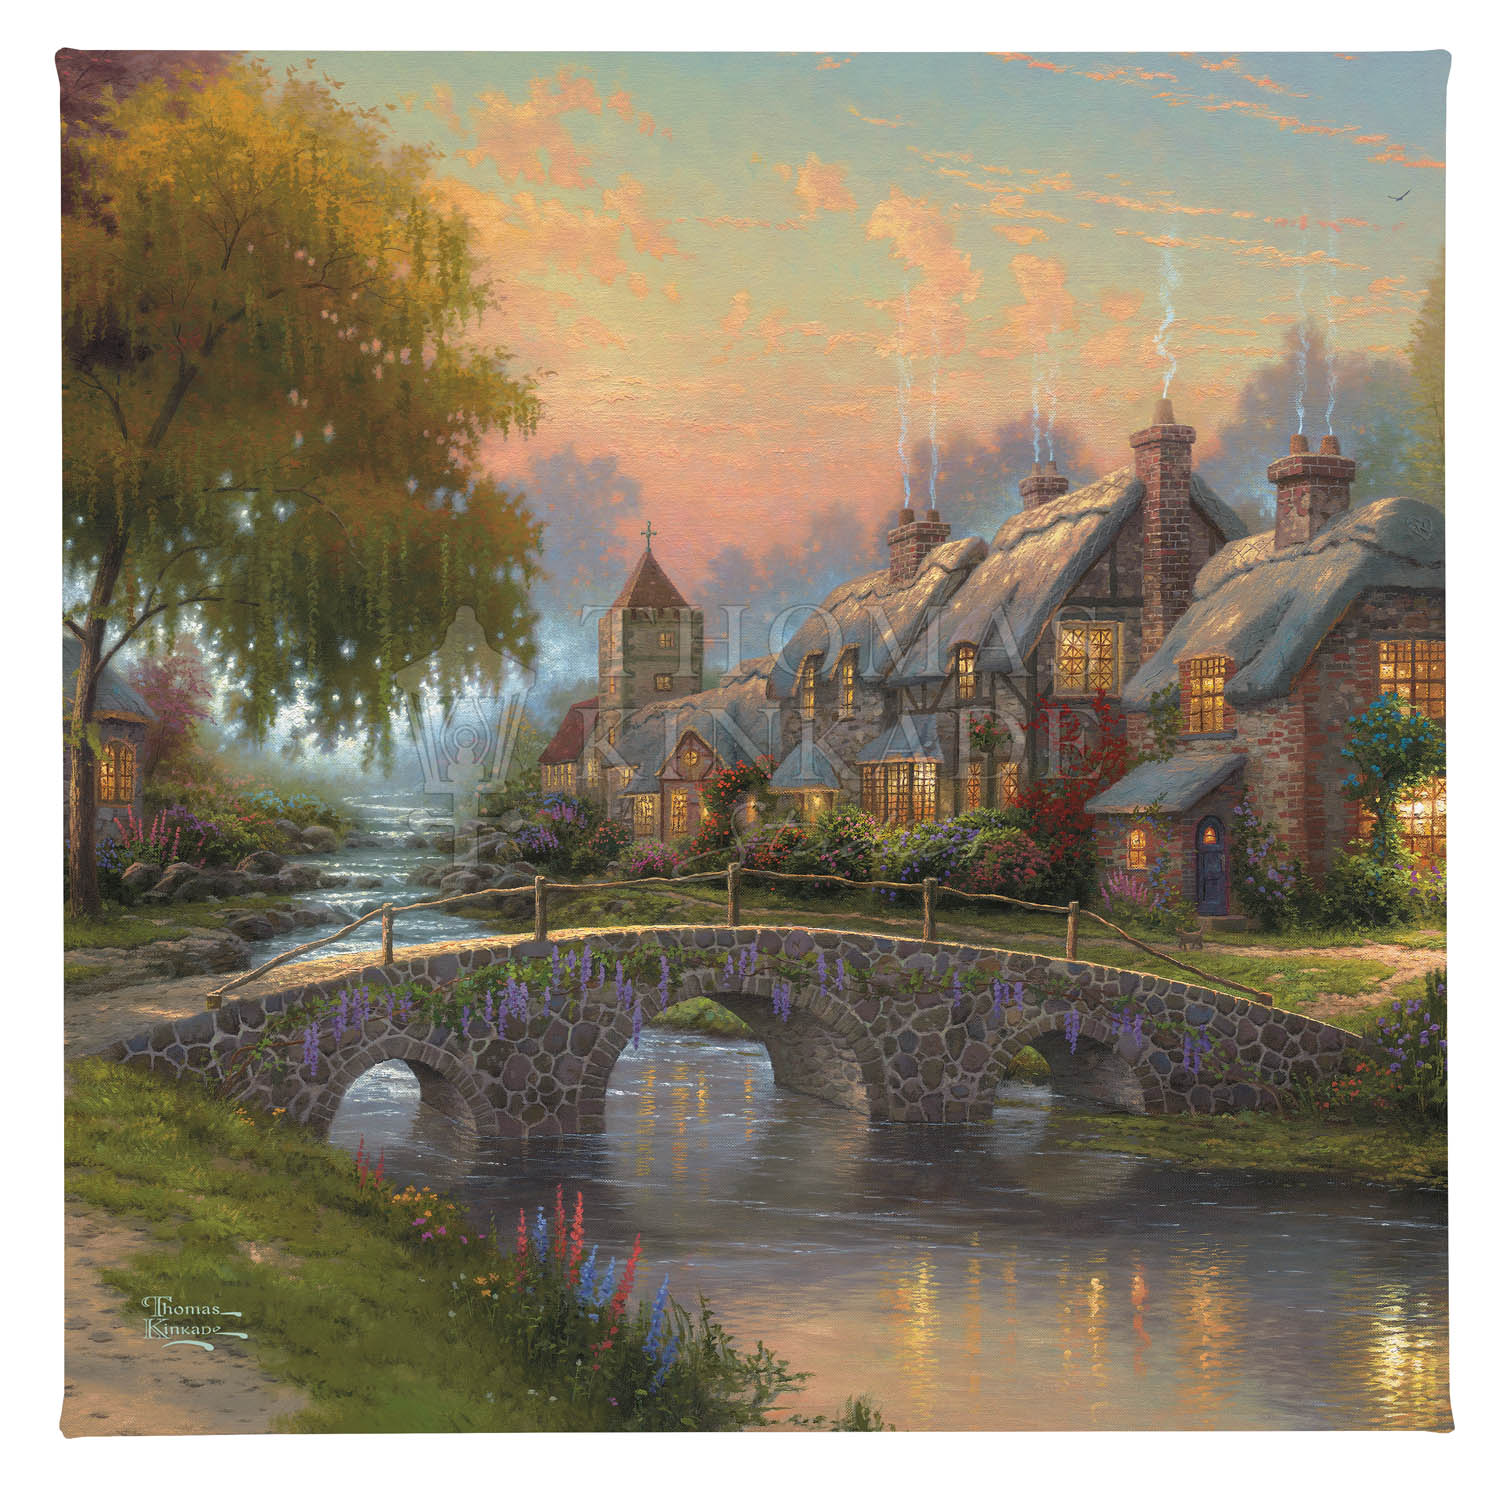 "Cobblestone Bridge - 14"" x 14"" Gallery Wrapped Canvas"